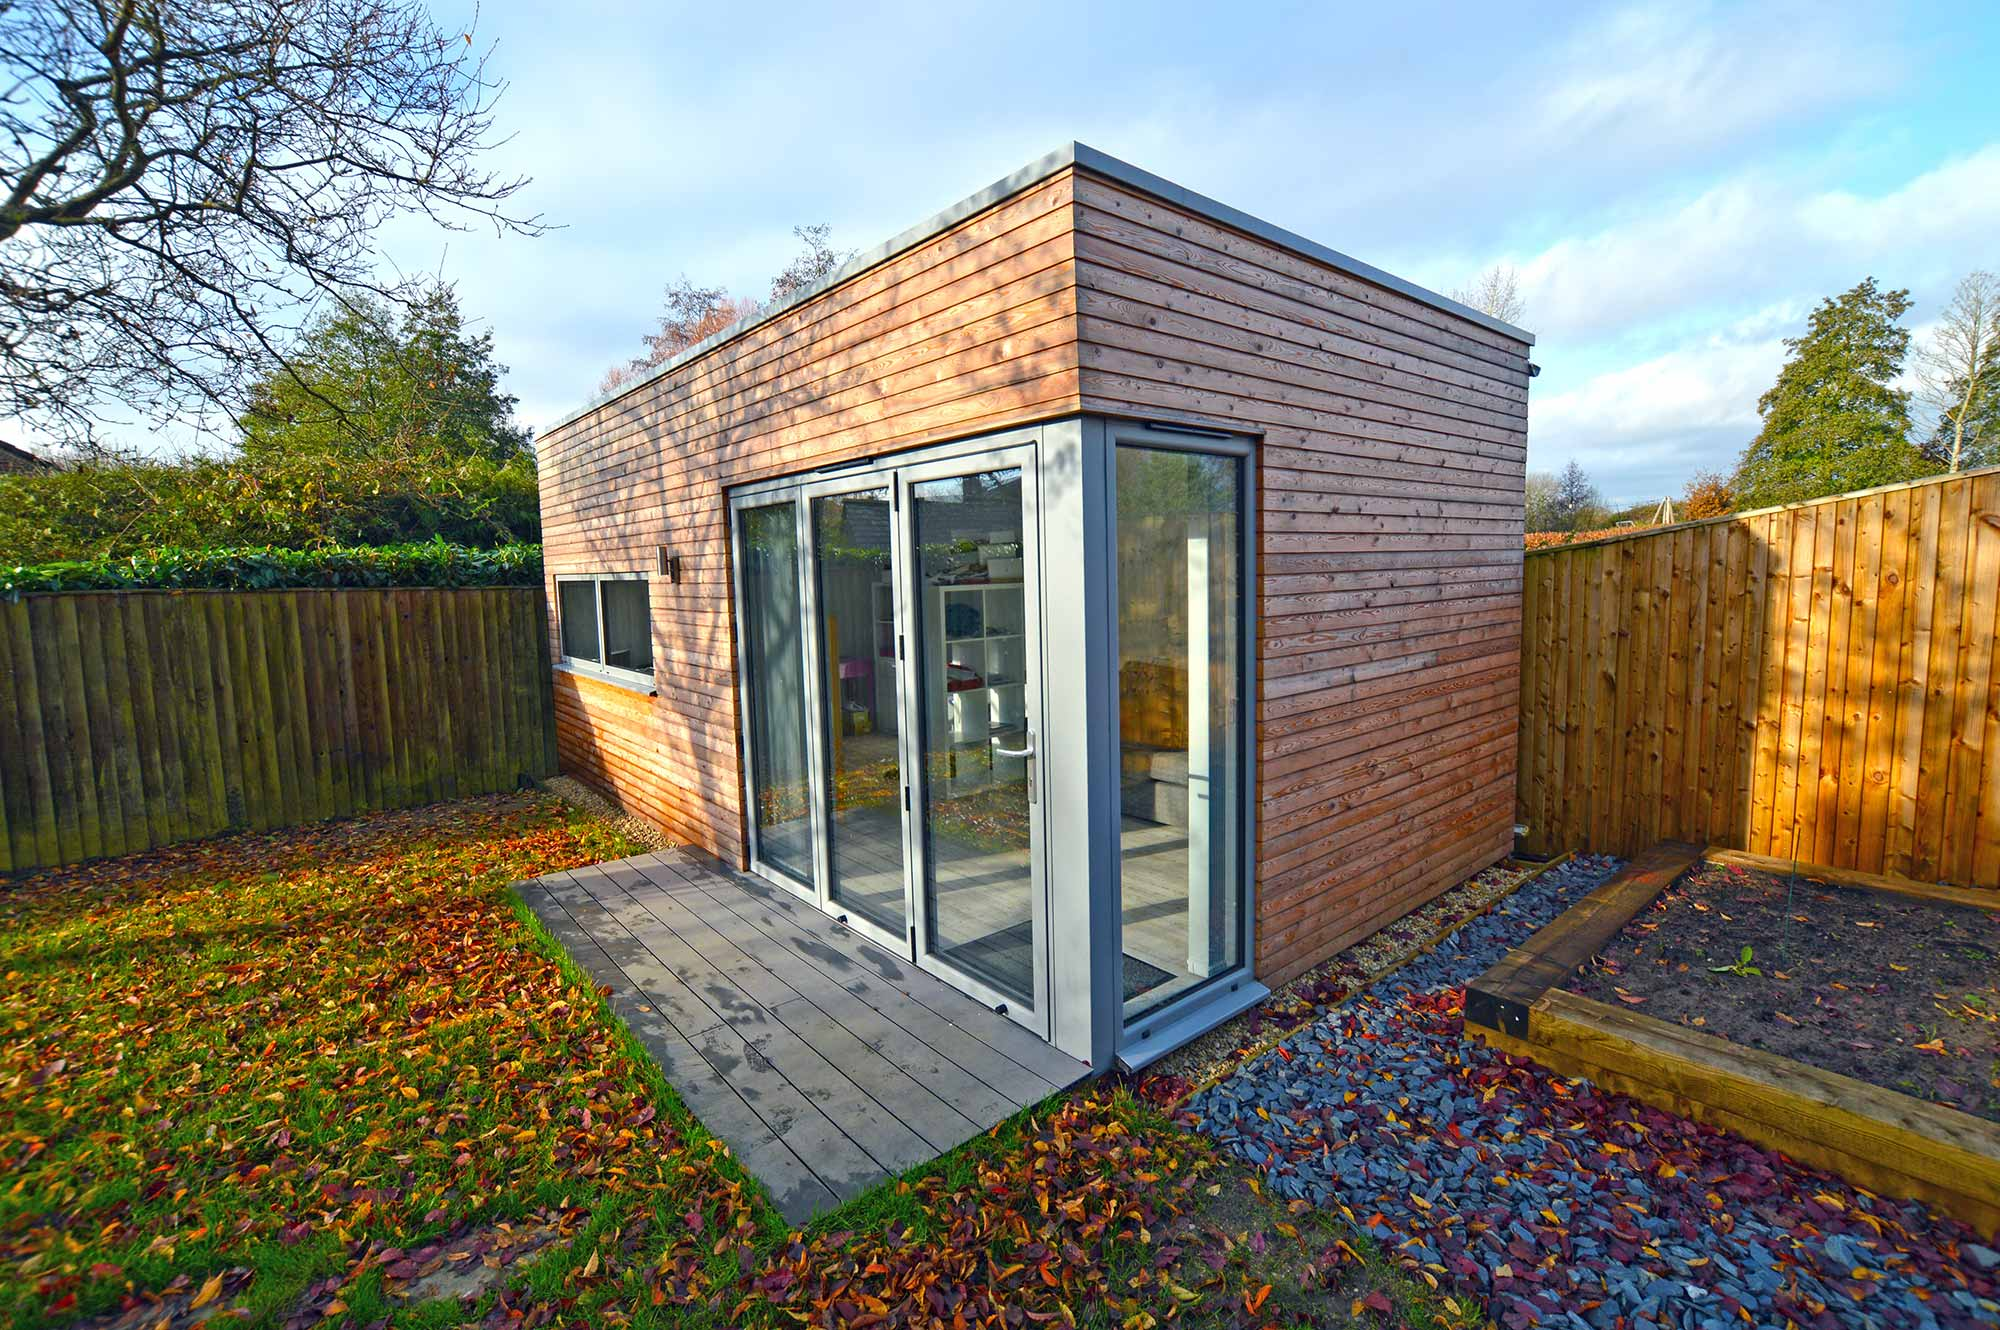 Kennet Design Architecture & Planning Wiltshire Garden Room